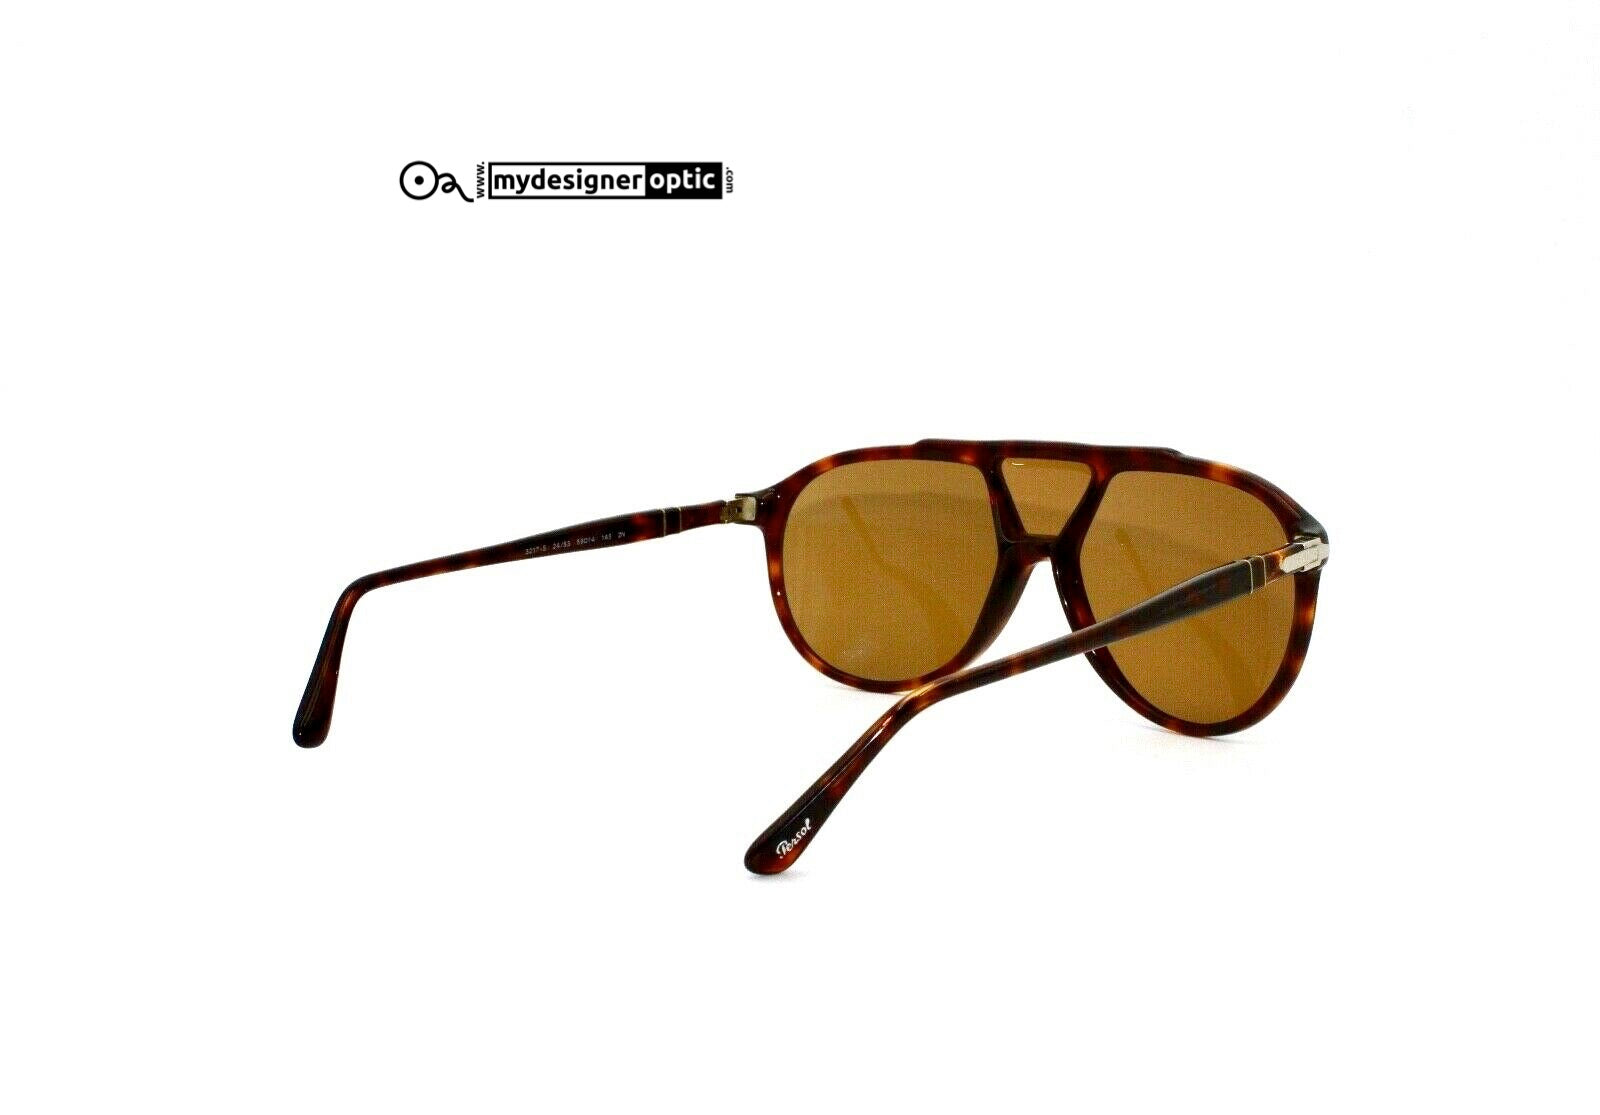 Persol Sunglasses 3217-S 24/53 59-14 145 2N Hand Made in Italy - Mydesigneroptic